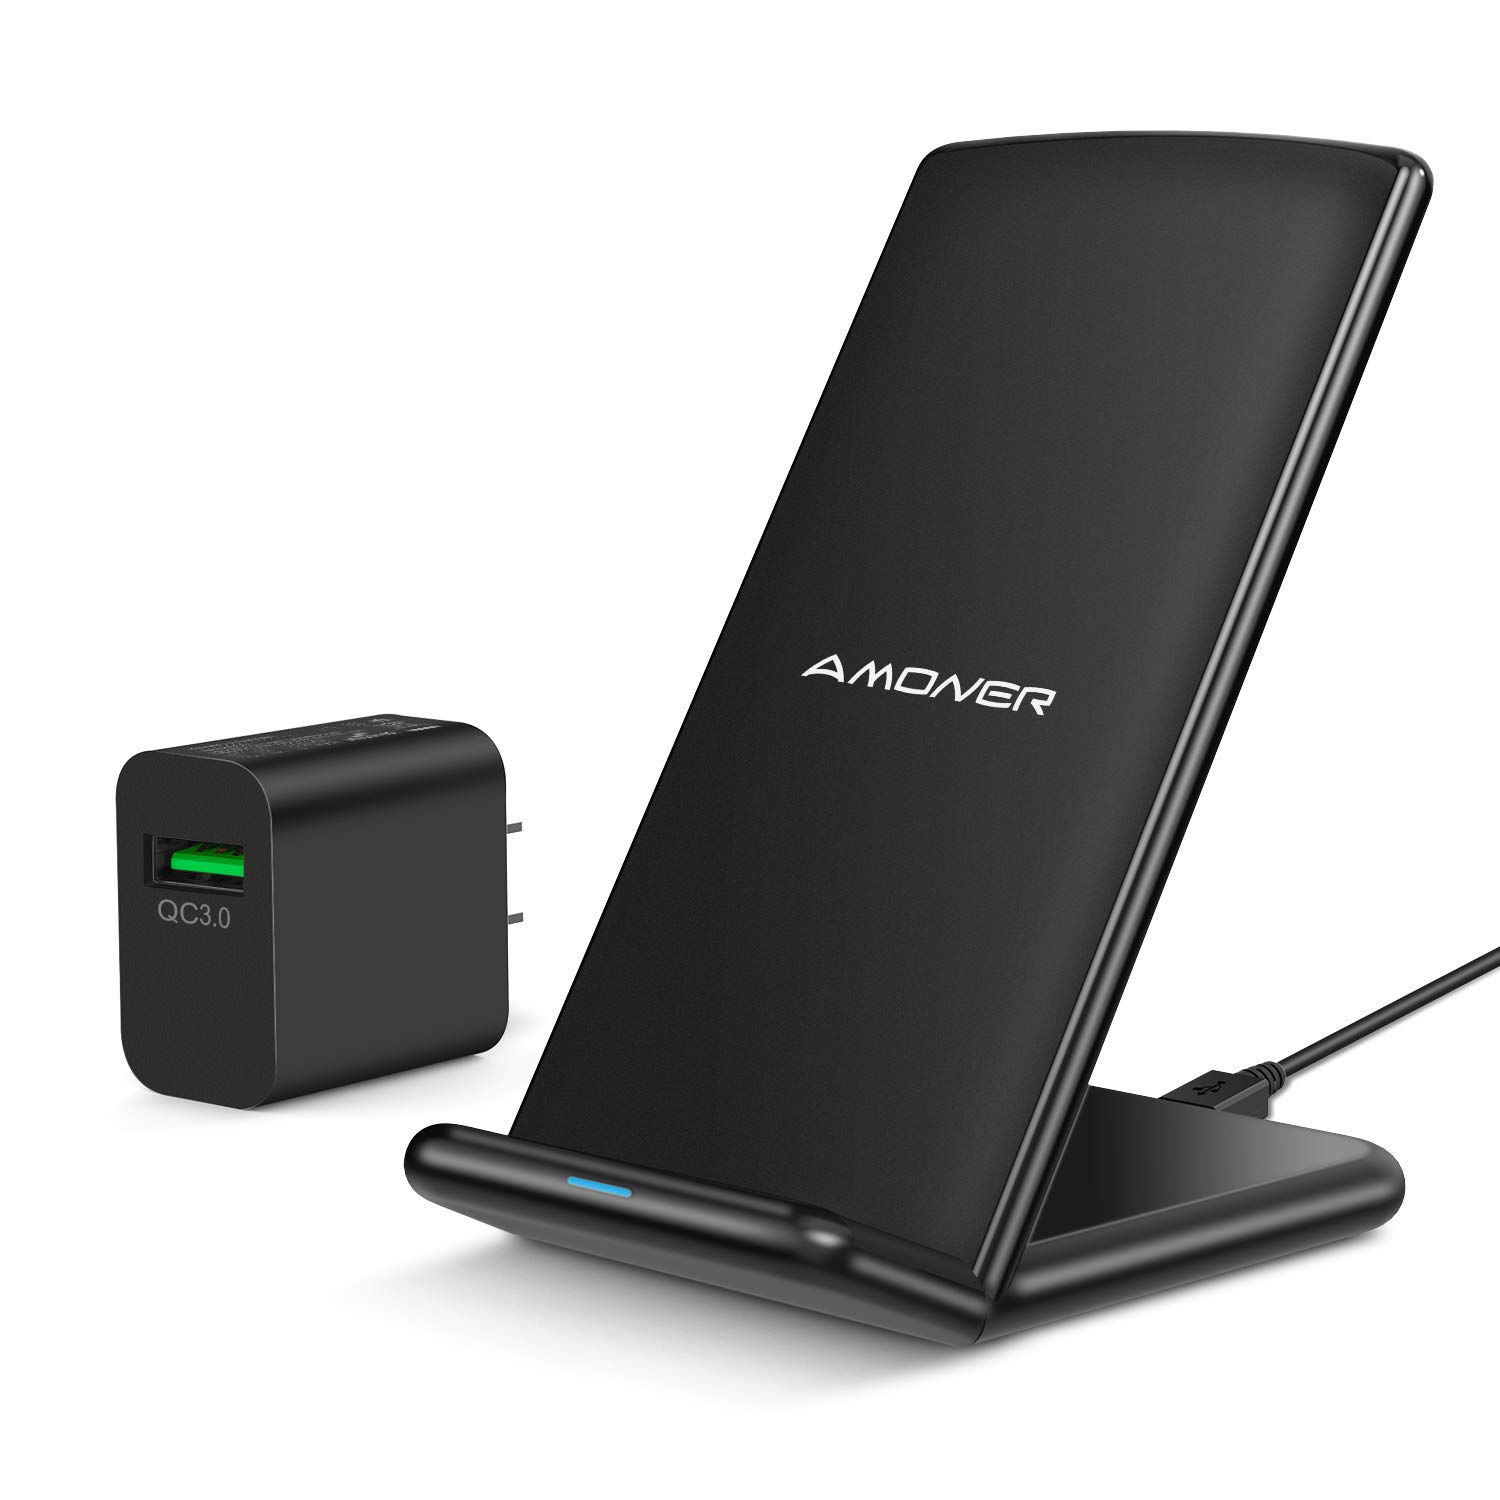 Amoner Wireless Charger, Qi-Certified 10W Wireless Charging Stand with 18W QC 3.0 Adapter Compatible with Galaxy S10/S9/S9+/S8/S8+, iPhone 11/11 Pro/11 Pro Max/Xs Max/Xs/XR/X/8/8Plus